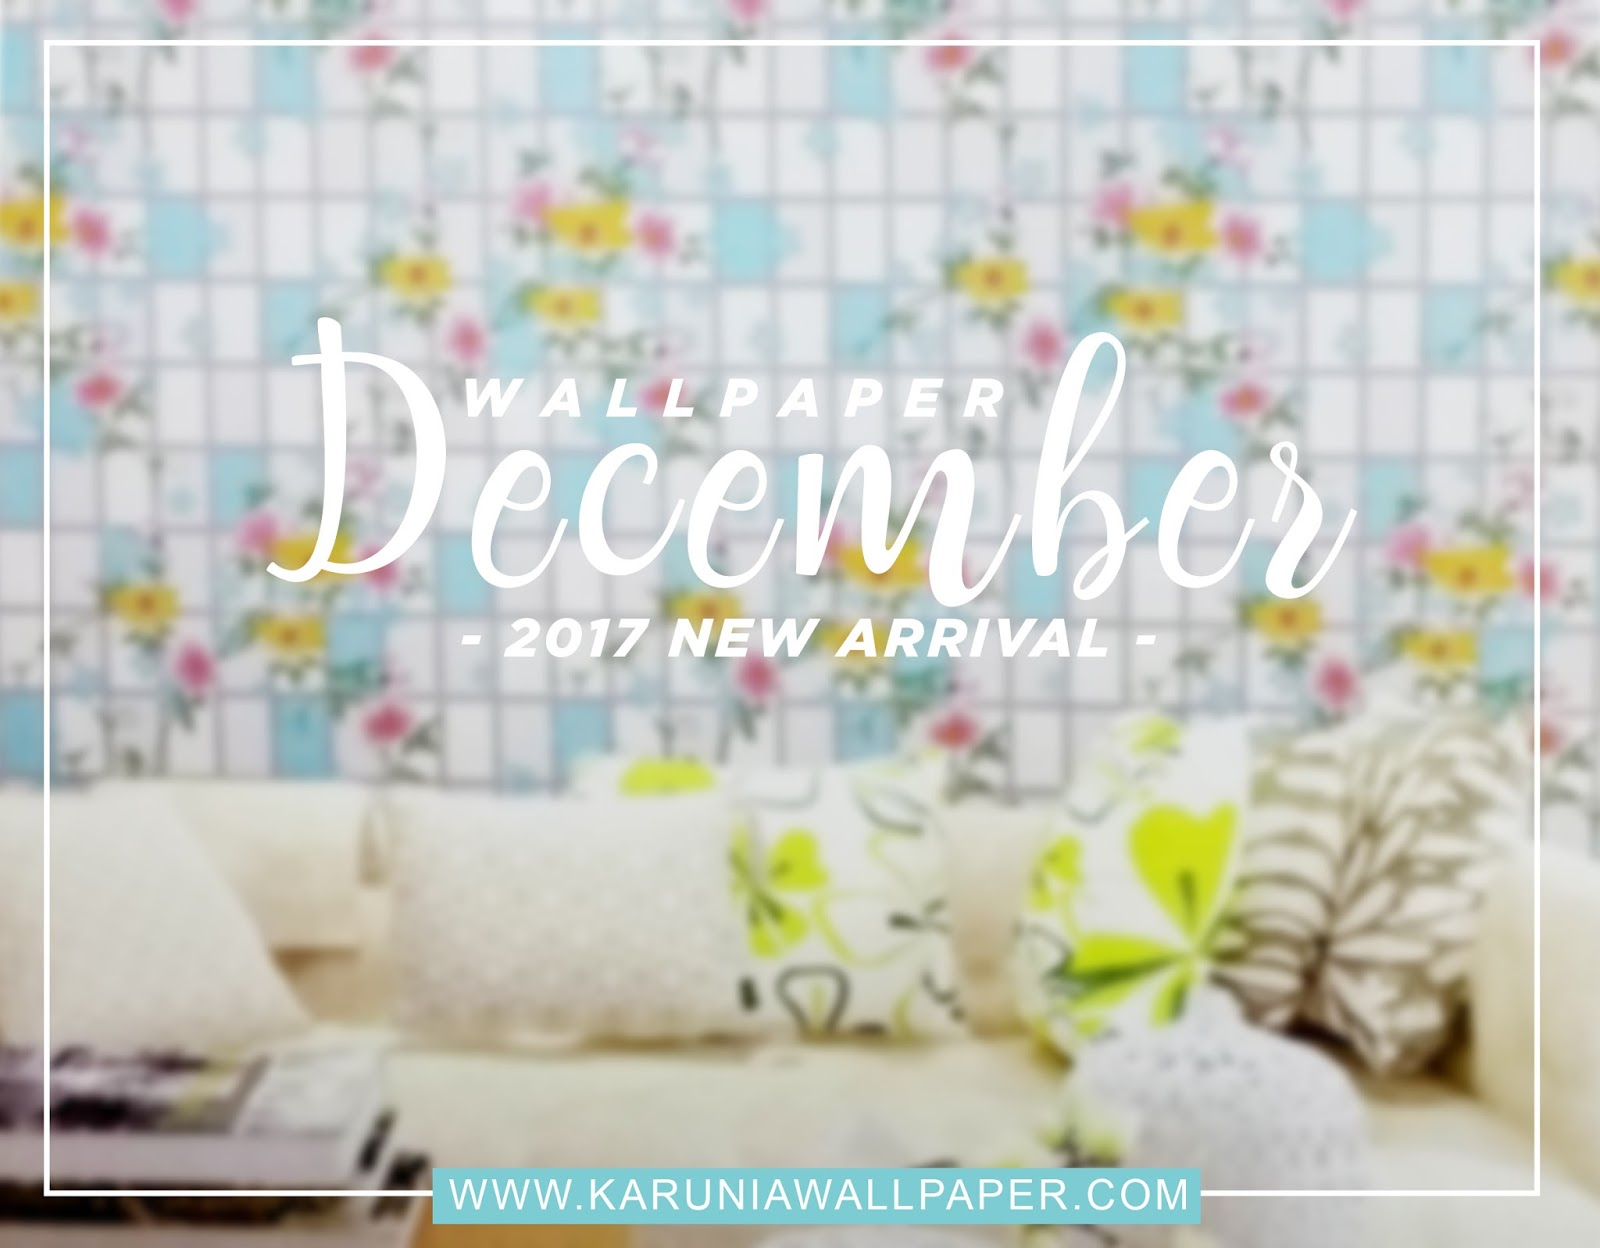 new arrival wallpaper dinding karuniawallpaper